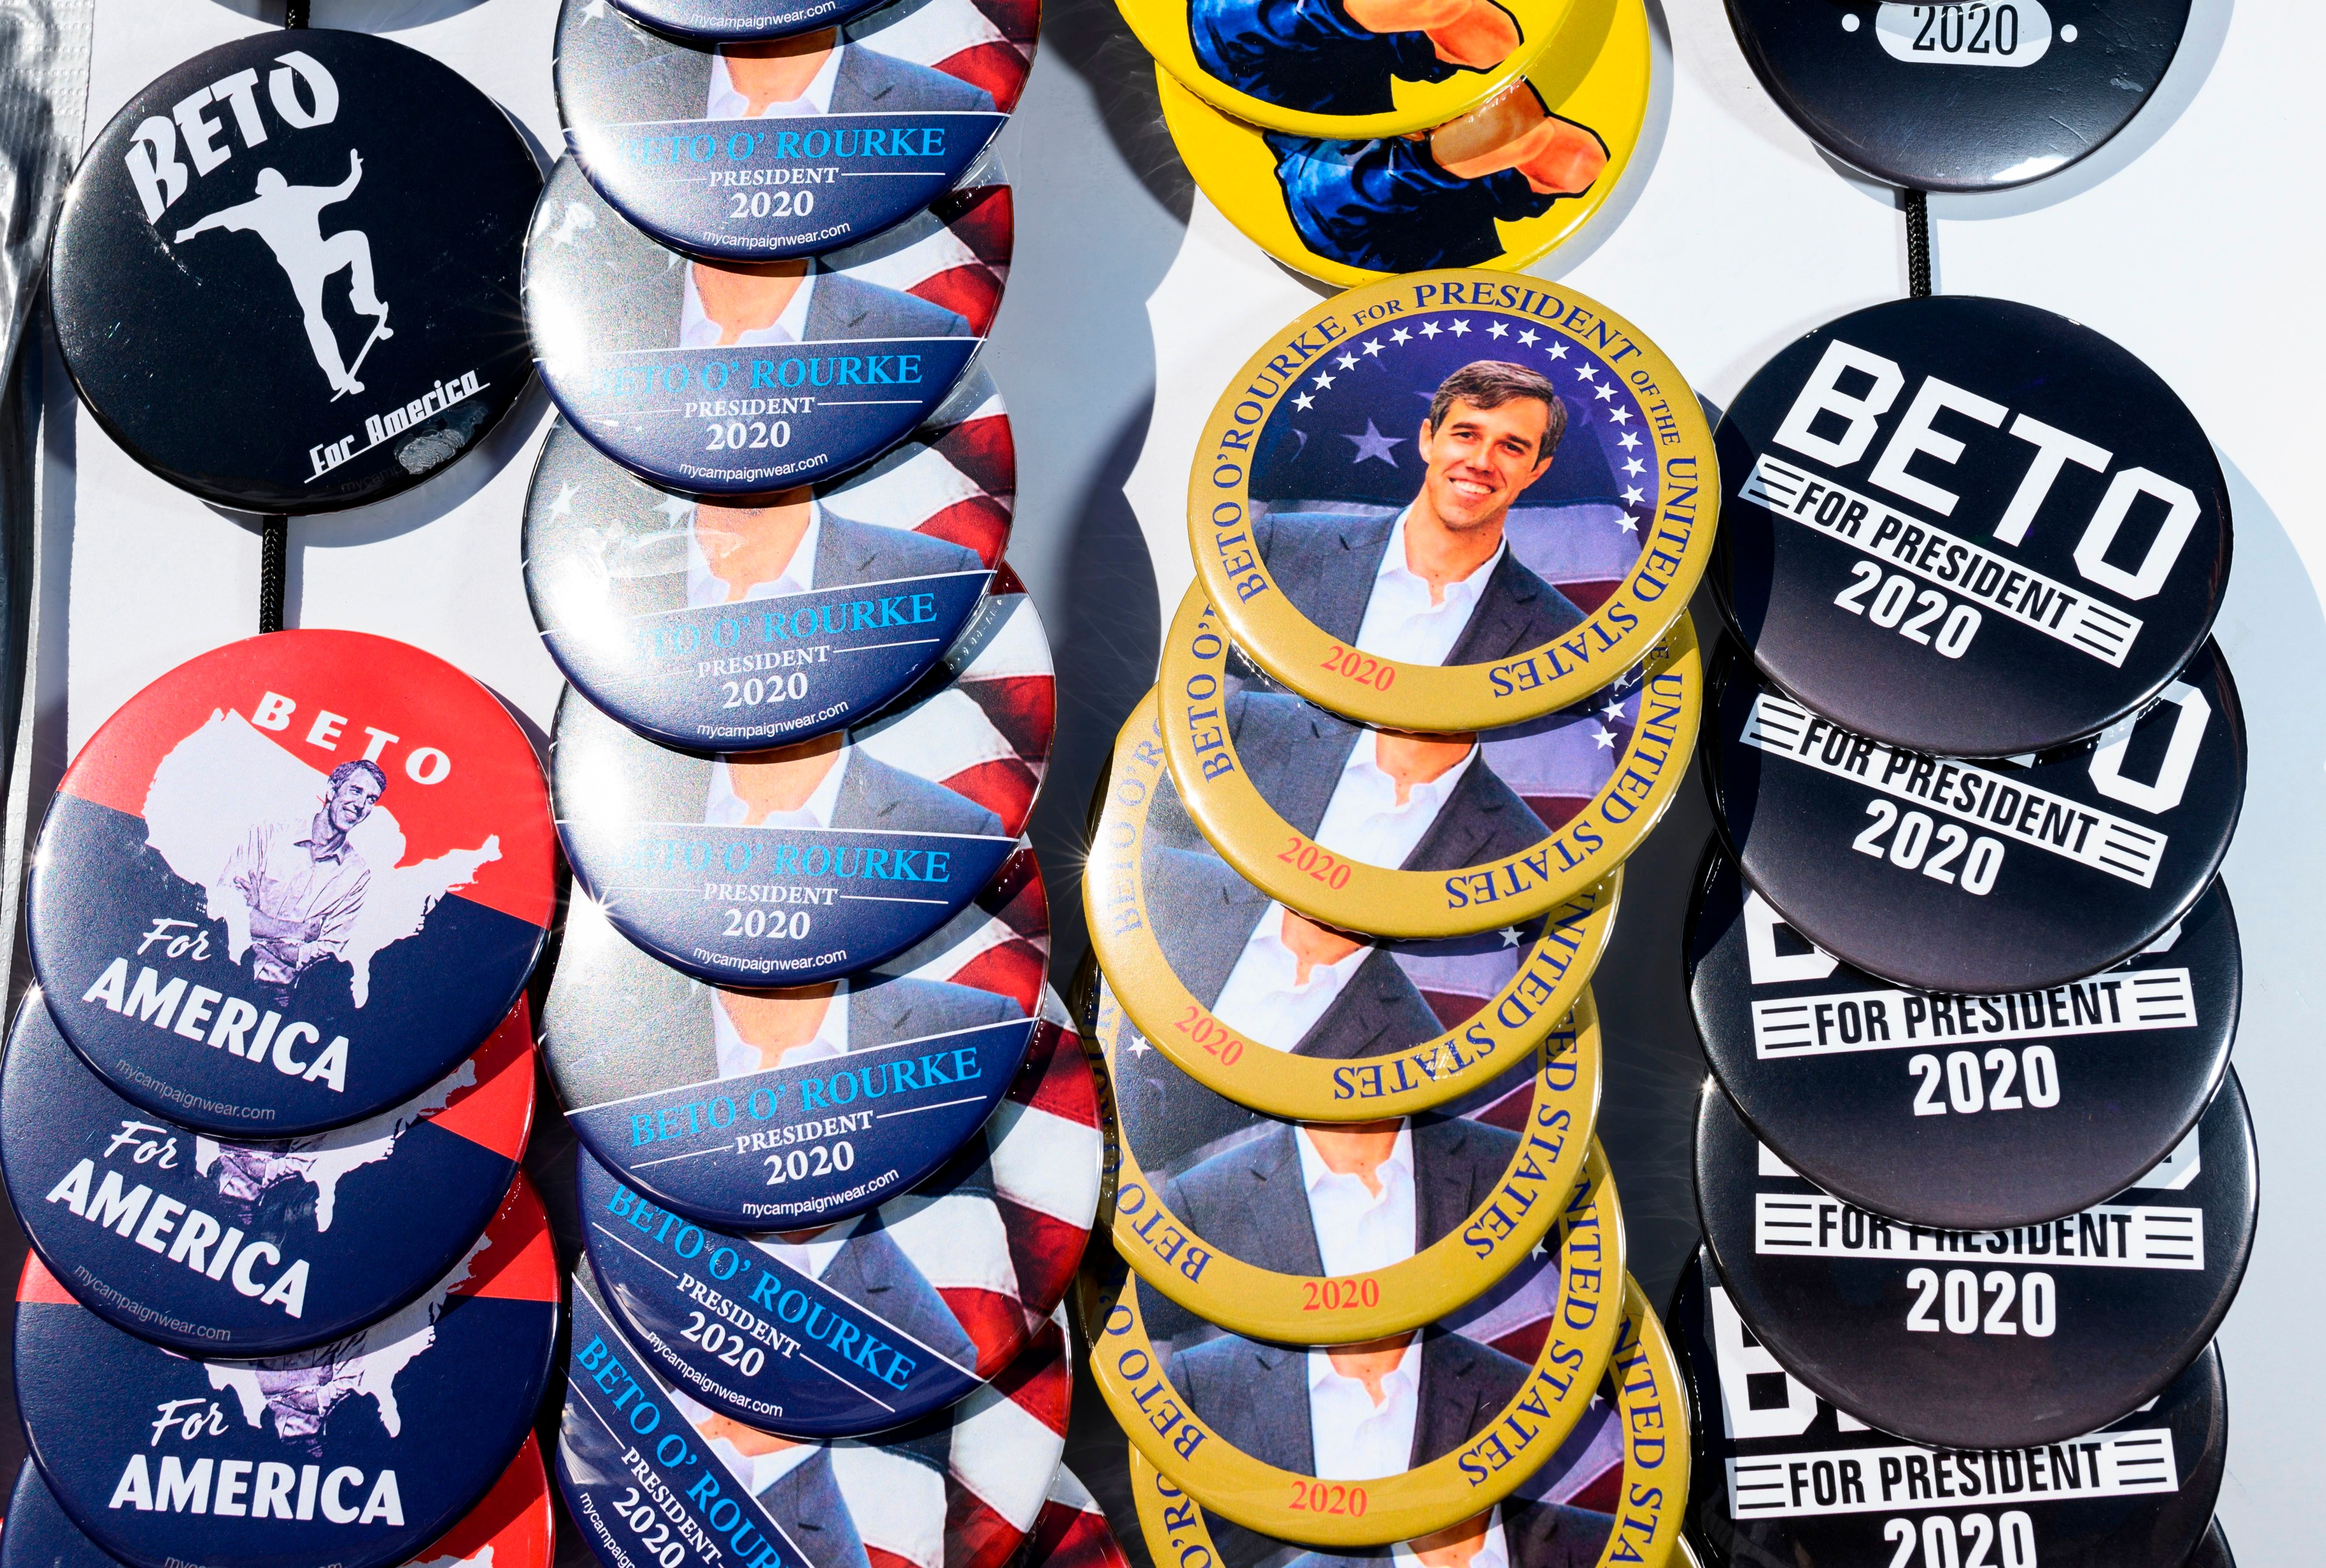 James Bragg of Dallas, TX sells buttons supporting former Texas Congressman Beto O'Rourke outside a campaign stop on March 15, 2019 in Washington, Iowa, one day after O'Rourke announced his candidacy for president joining a growing field of 2020 Democratic hopefuls. (Photo by STEPHEN MATUREN / AFP)        (Photo credit should read STEPHEN MATUREN/AFP/Getty Images)